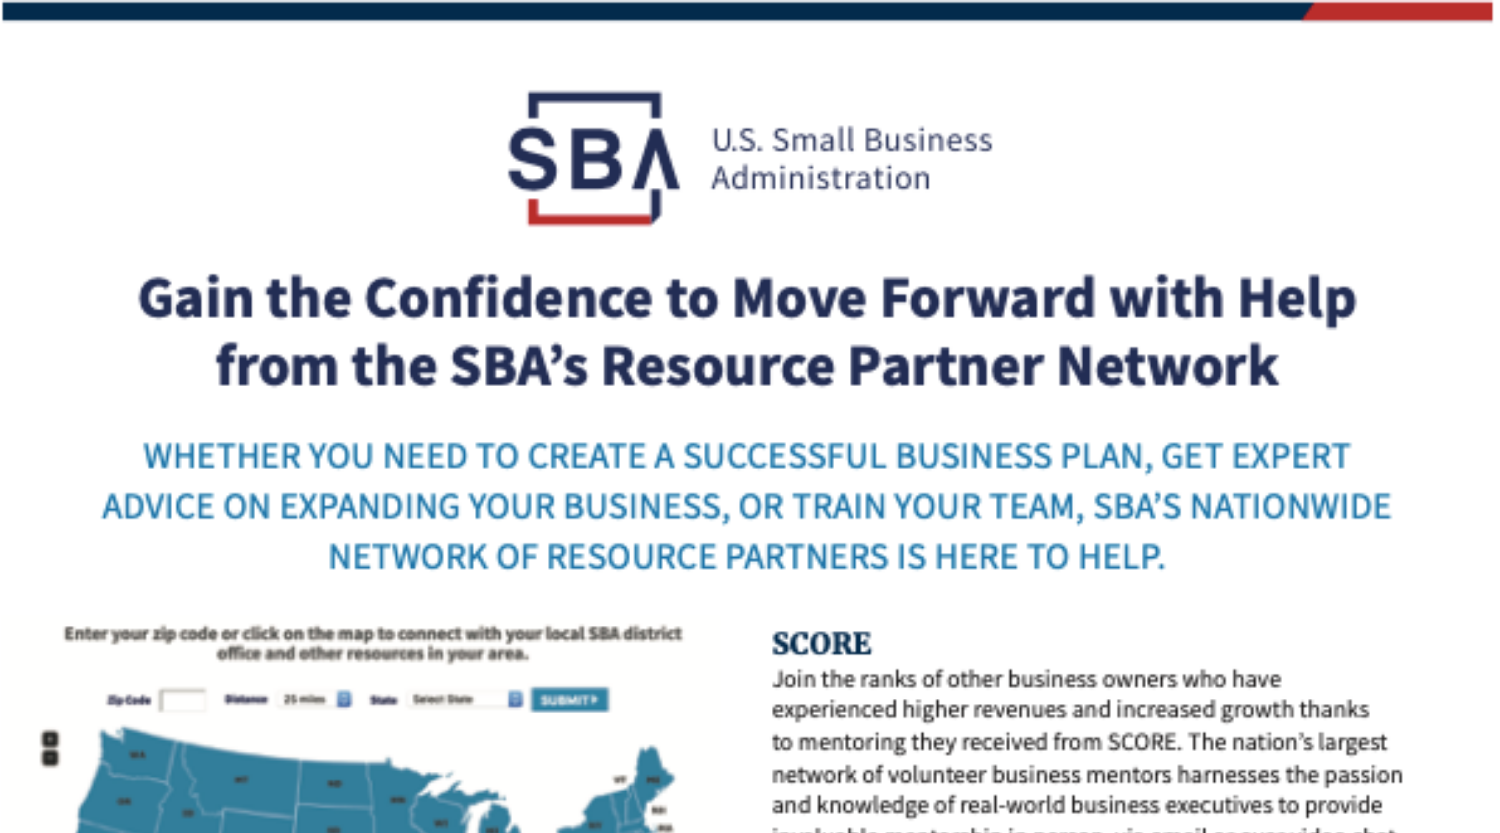 SBA's Resource Partners